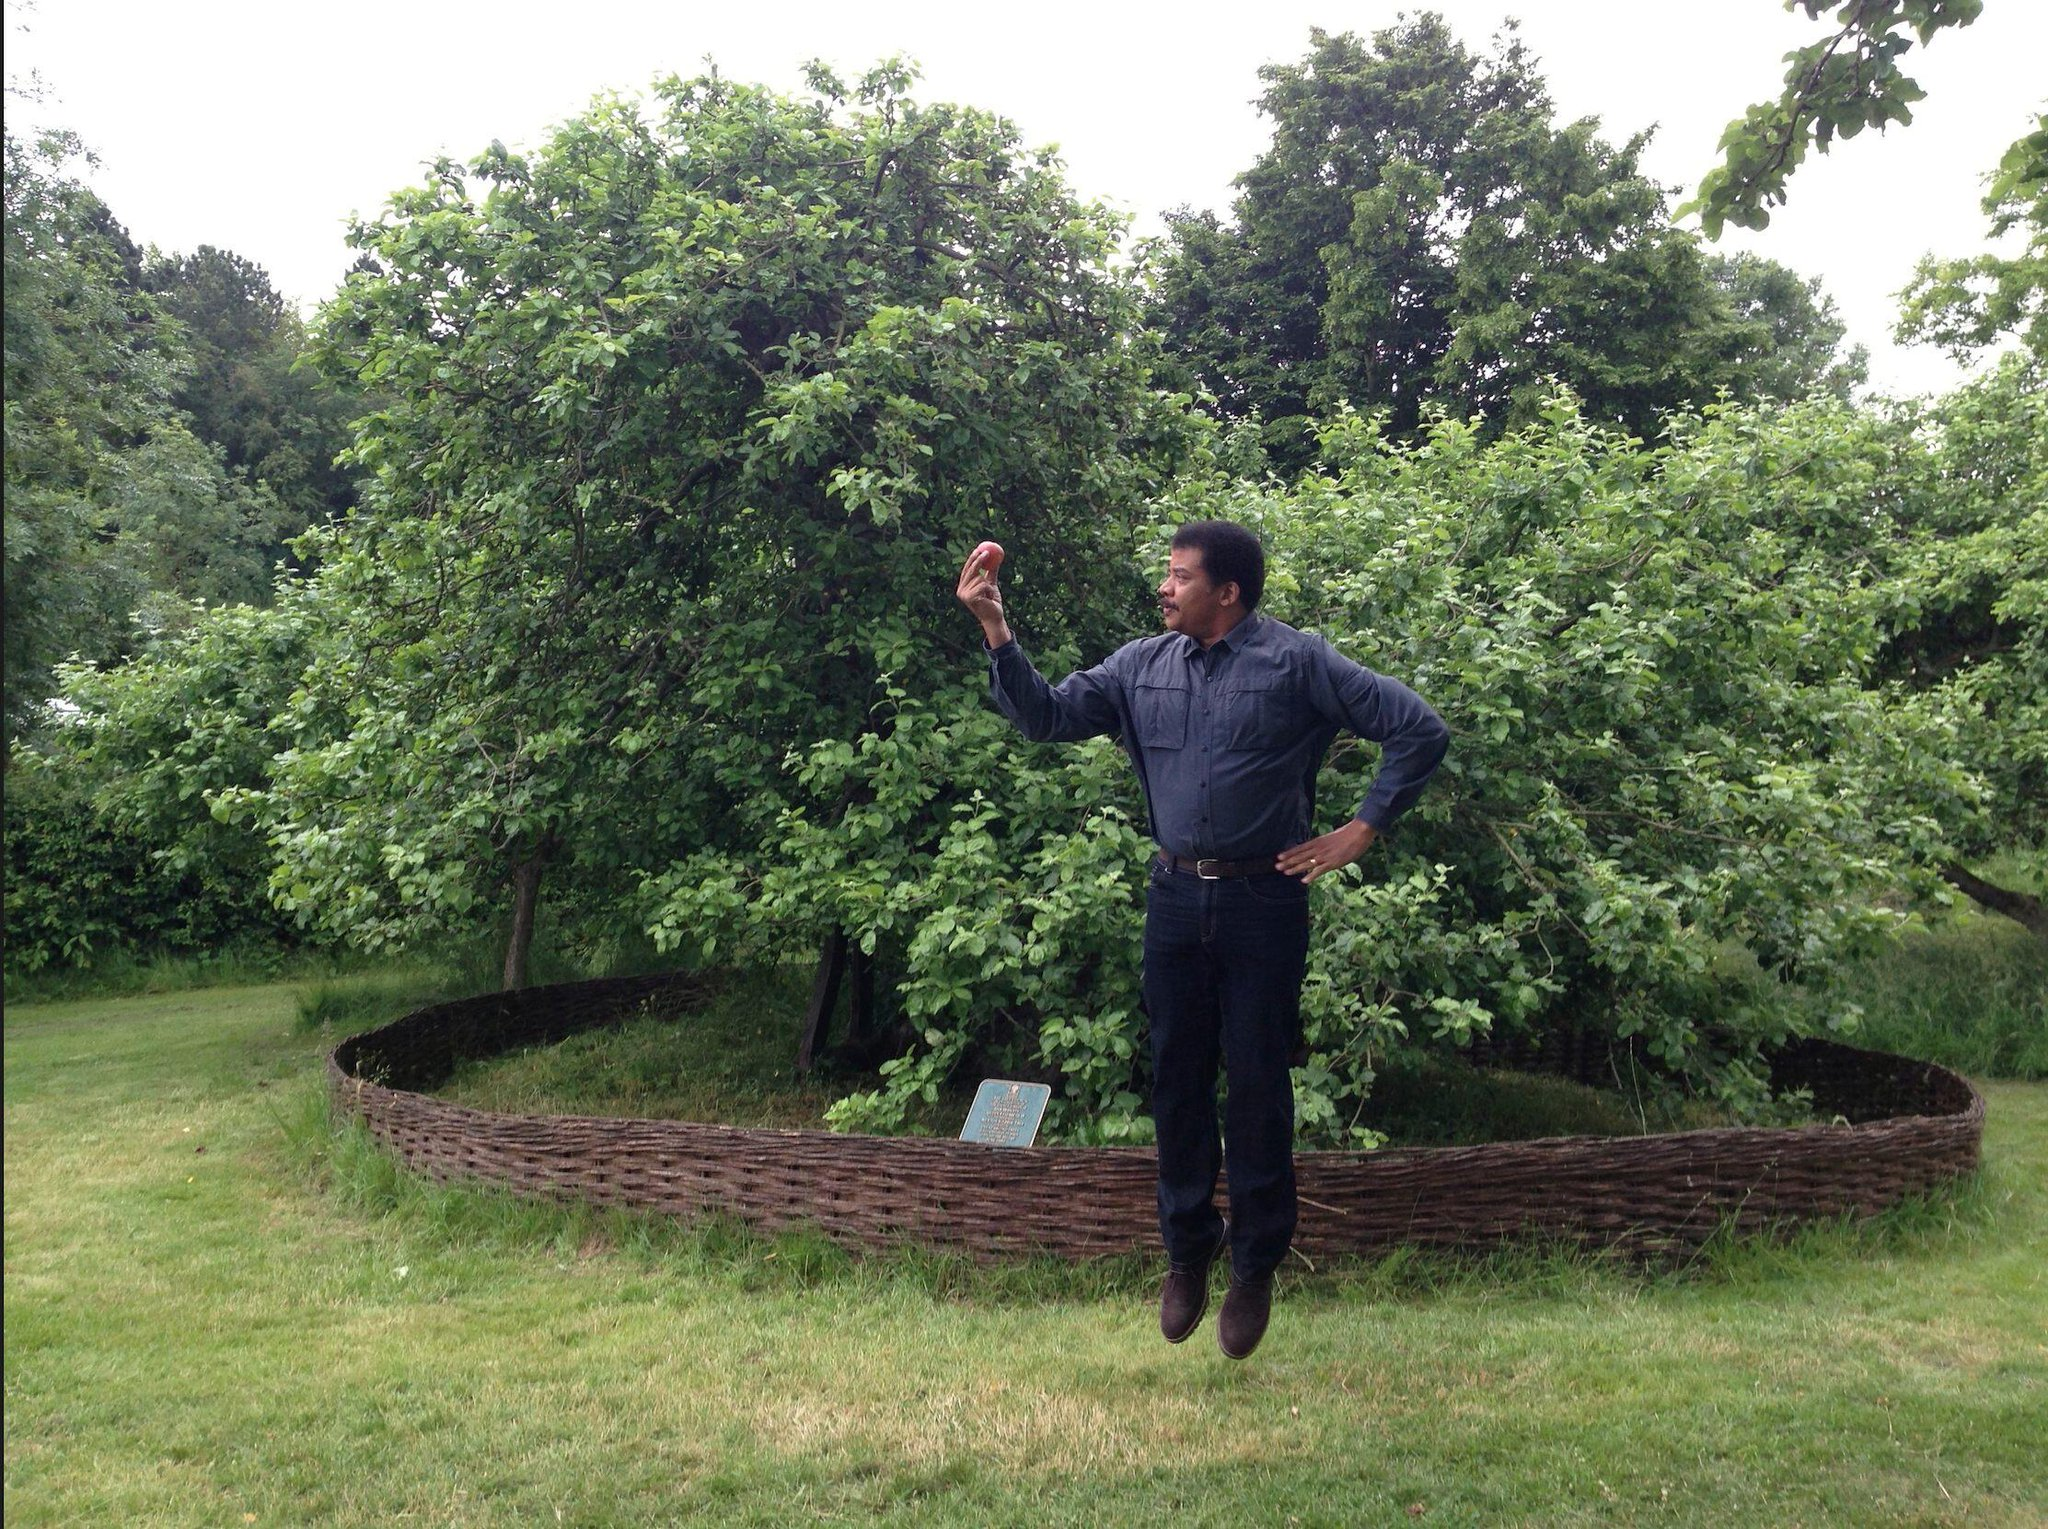 Newton's AppleTree at his home. Hold an Apple nearby & you rise weightless, they say. #WatchingCosmos http://t.co/5lO4VZLTFB